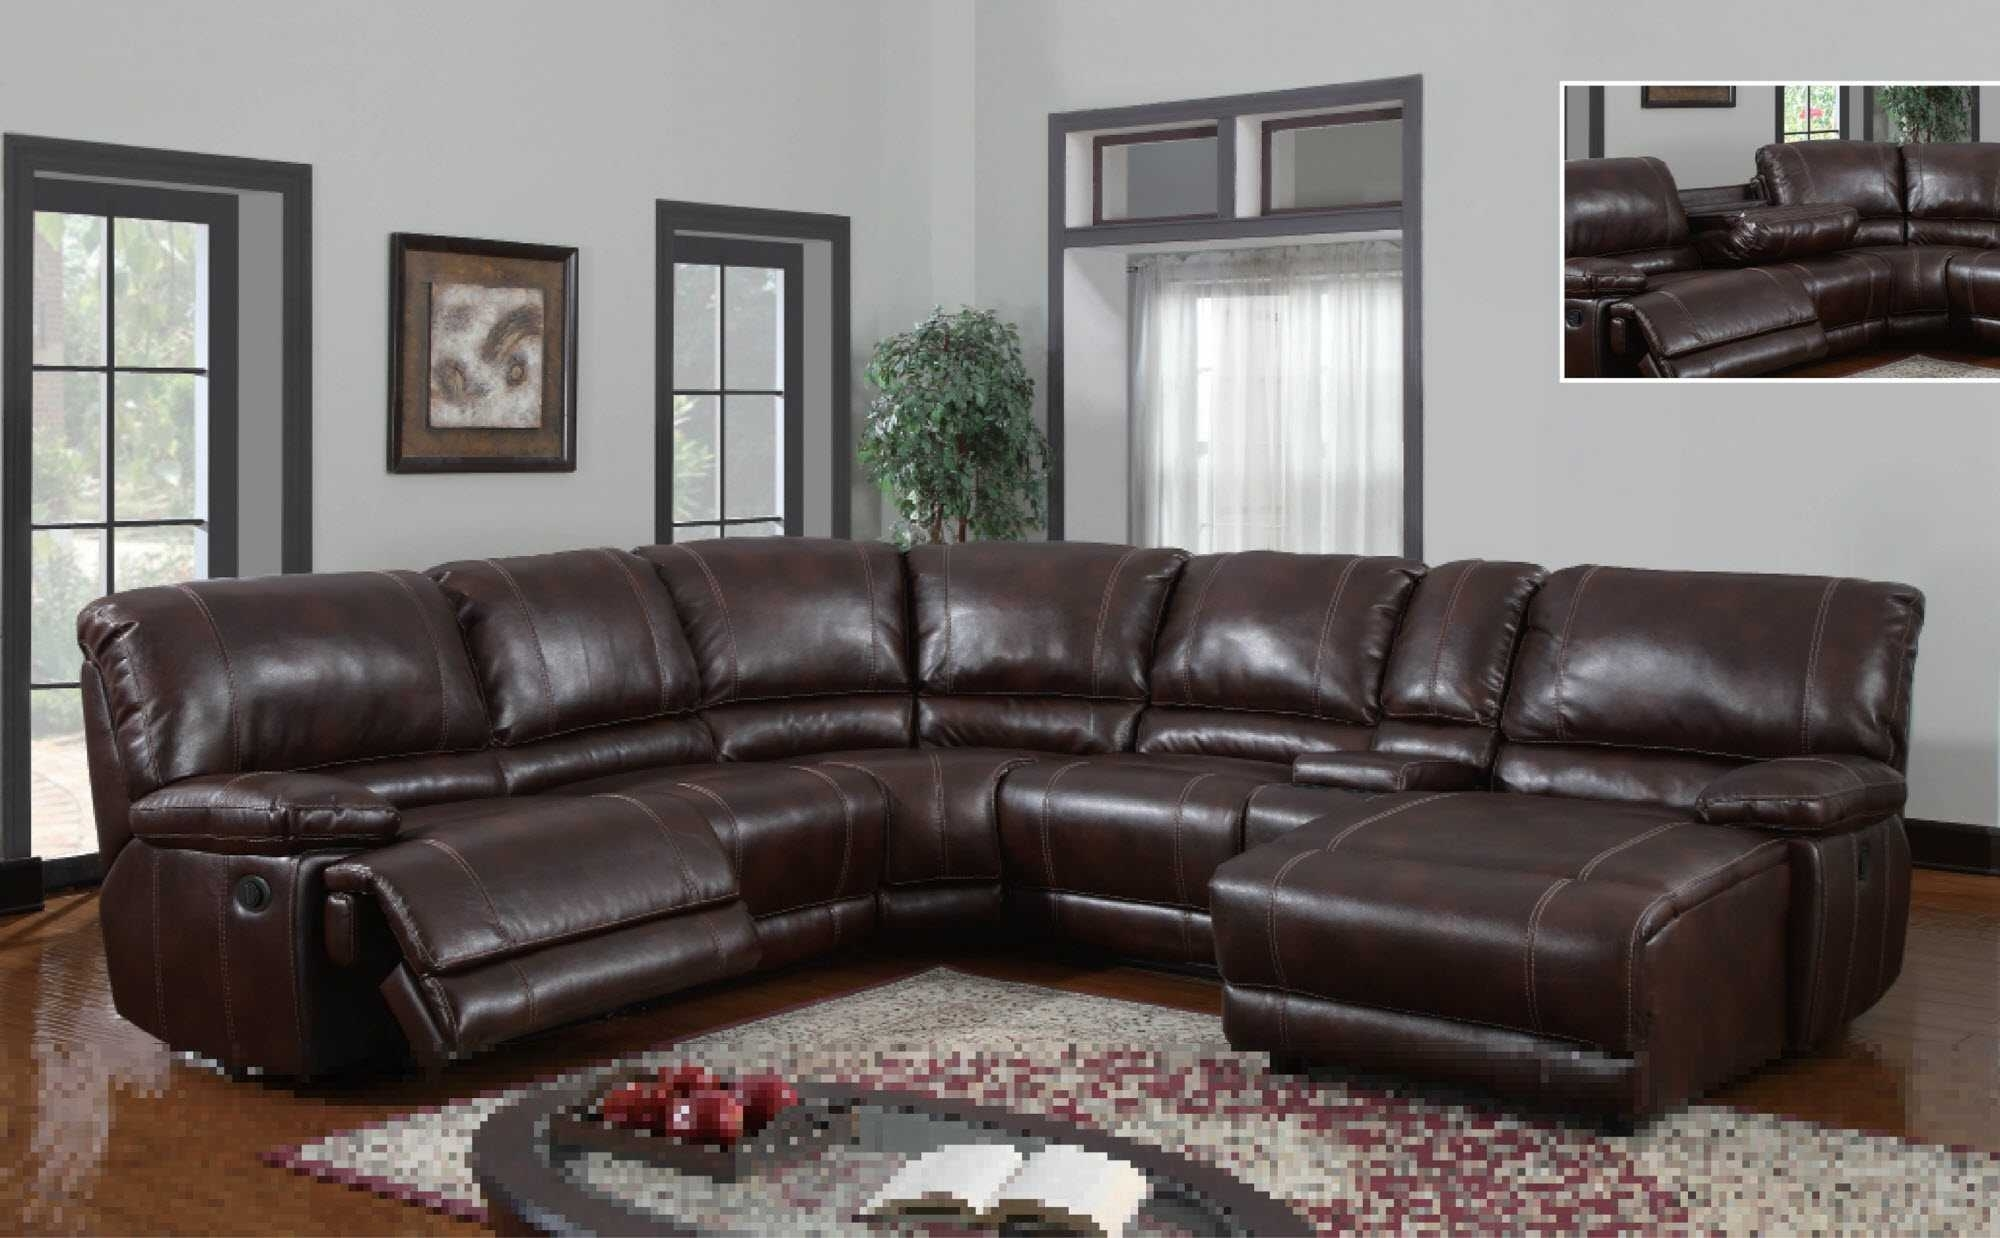 Leather Reclining Sectional Sofa Trends And Sofas With Recliners Throughout Red Leather Sectional Sofas With Recliners (View 10 of 10)